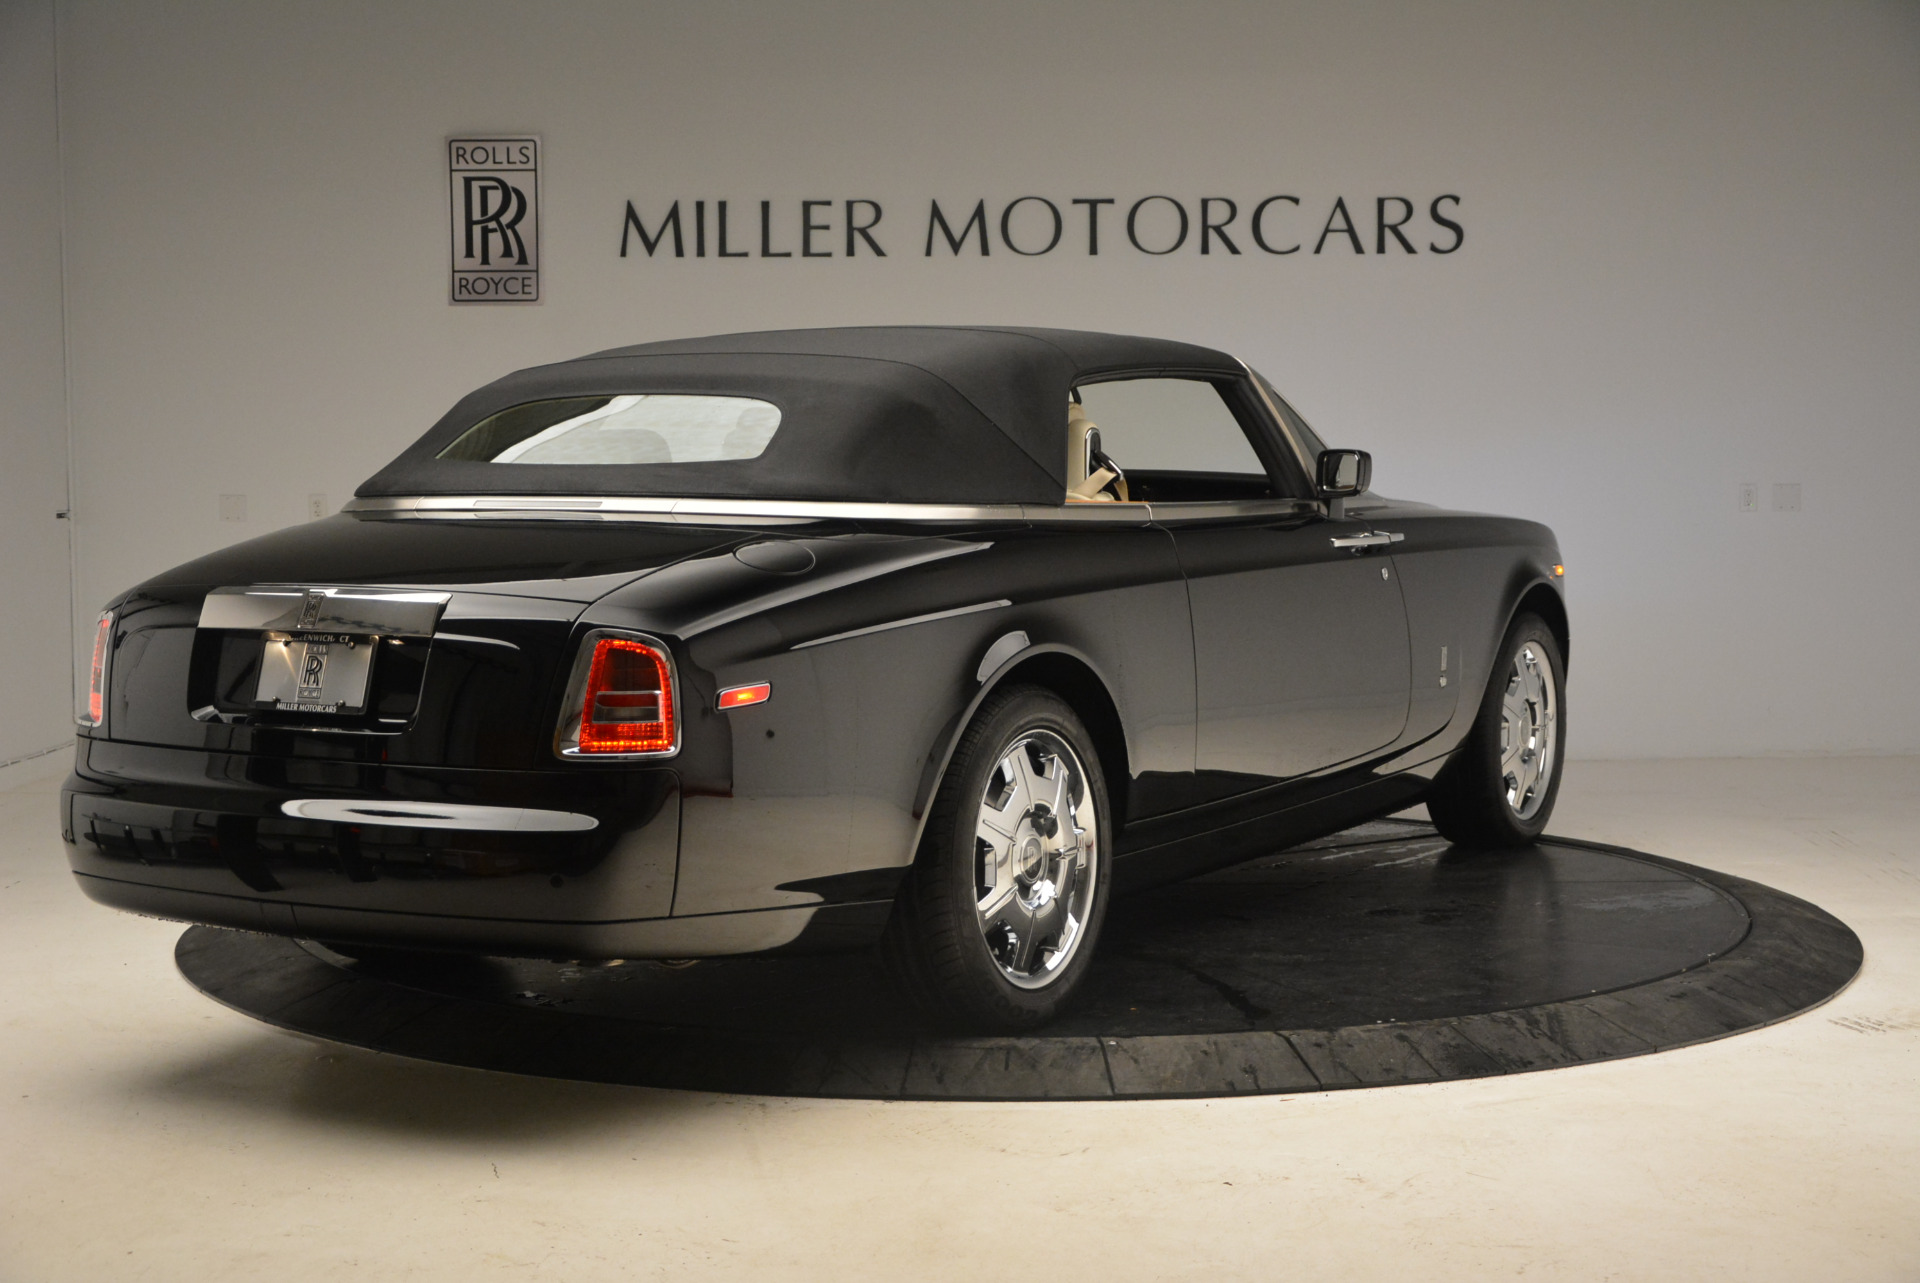 Used 2009 Rolls-Royce Phantom Drophead Coupe  For Sale In Greenwich, CT 1792_p19